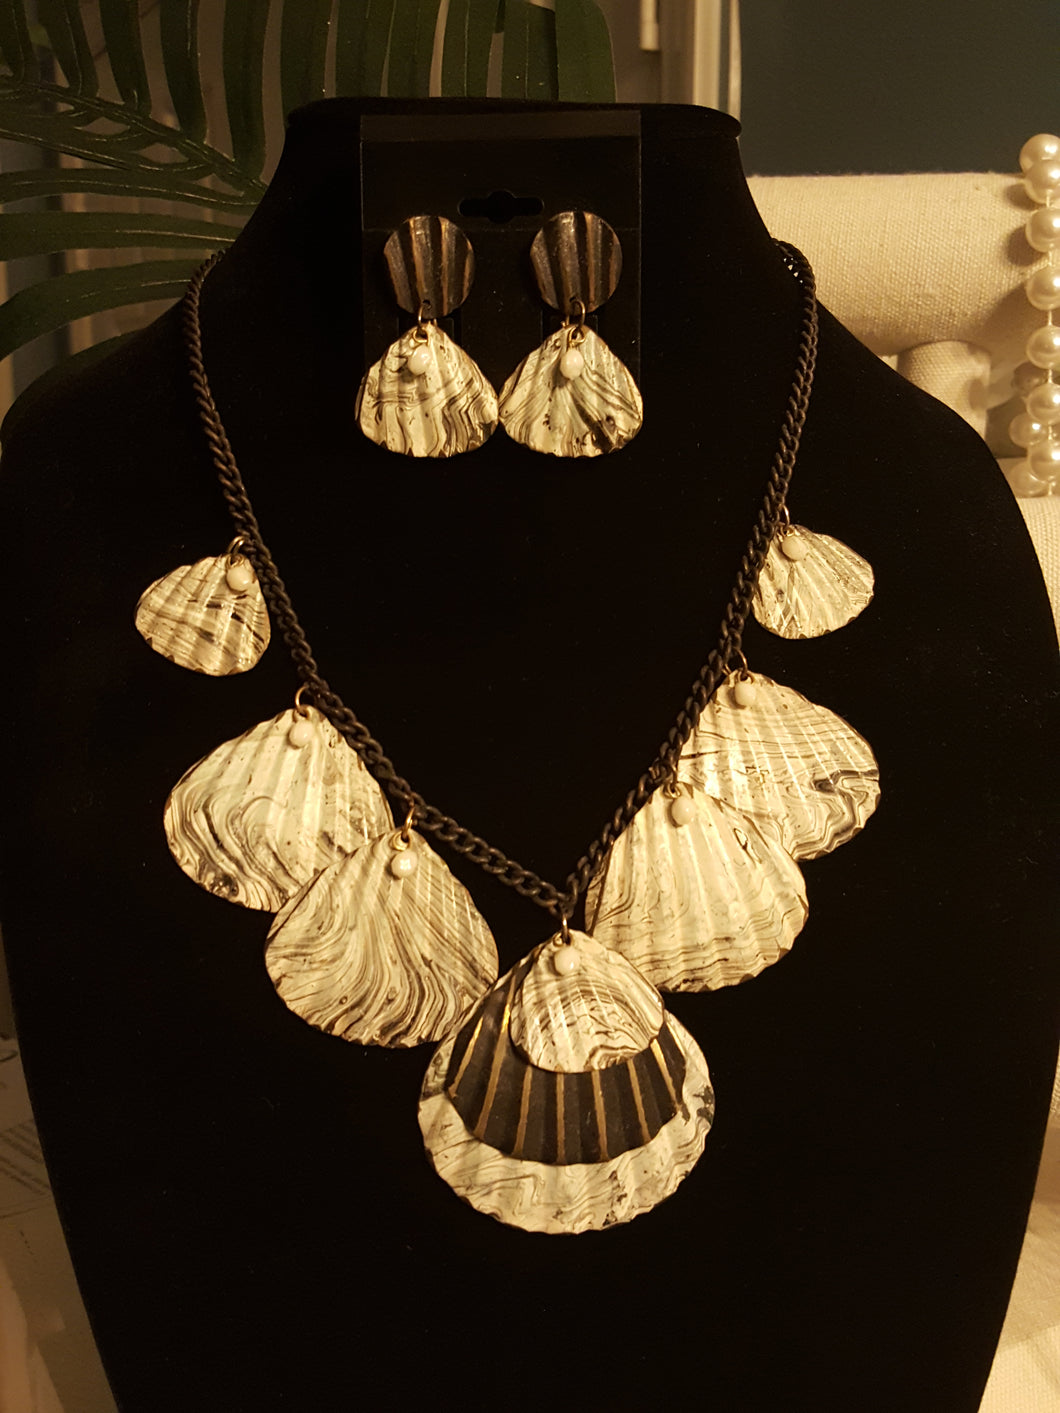 Black & White Swirl Seashell Necklace & Matching Earrings With White Beading